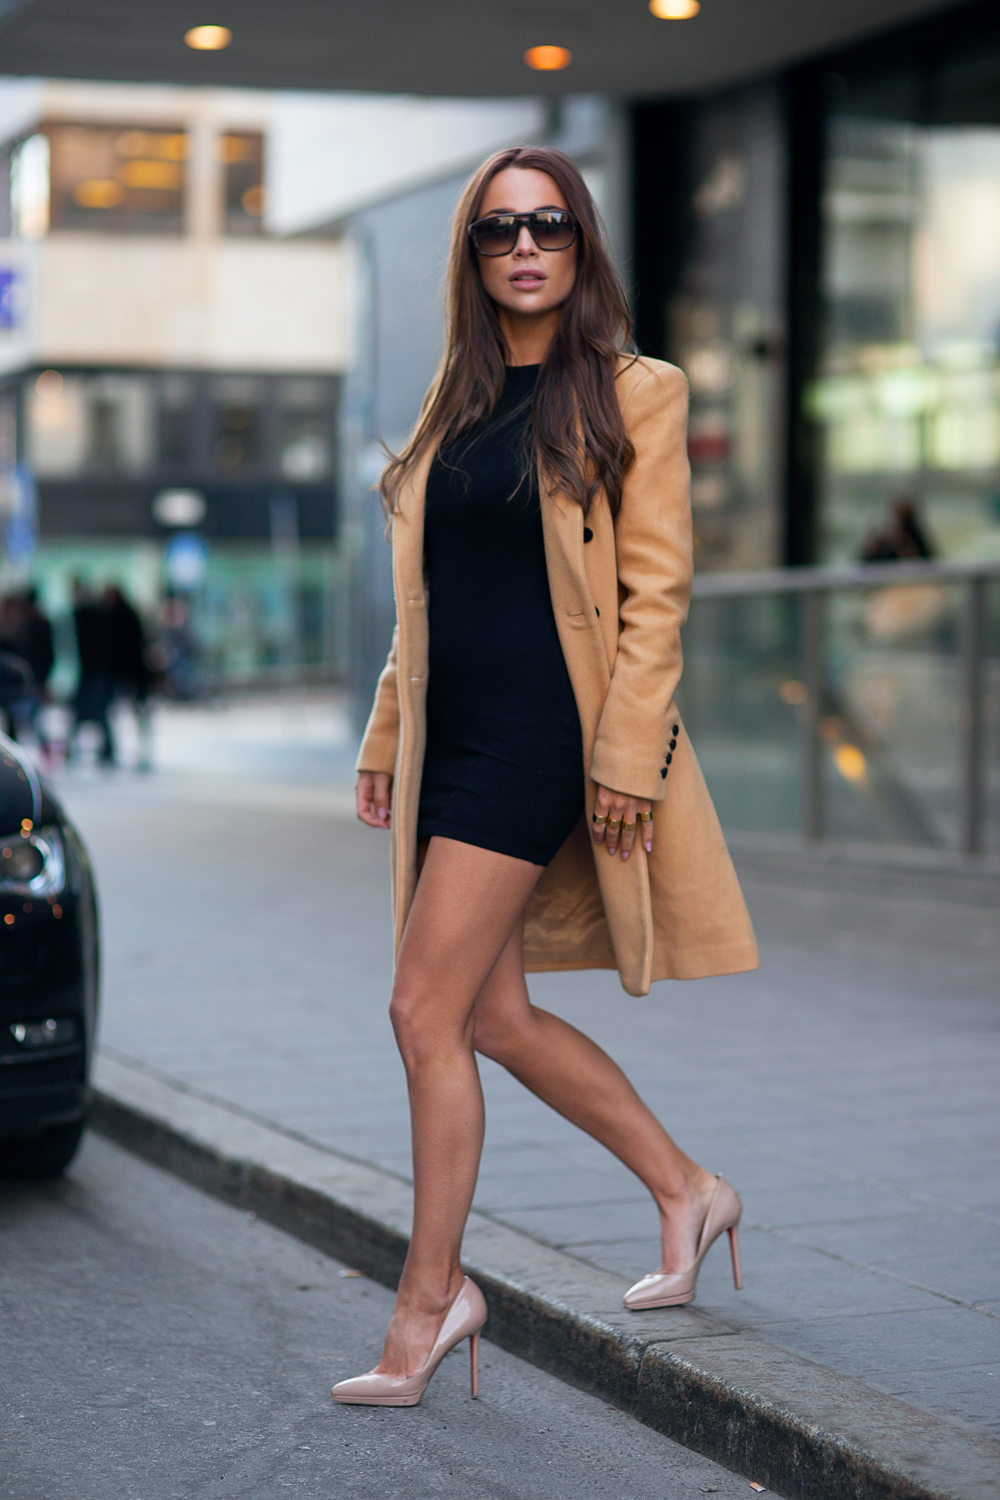 Johanna Olsson is wearing a nude shoes from Christian Loboutin, black dress from Asos Petit, camel coat from Selected Femme and the sunglasses are from Yves Saint Laurent